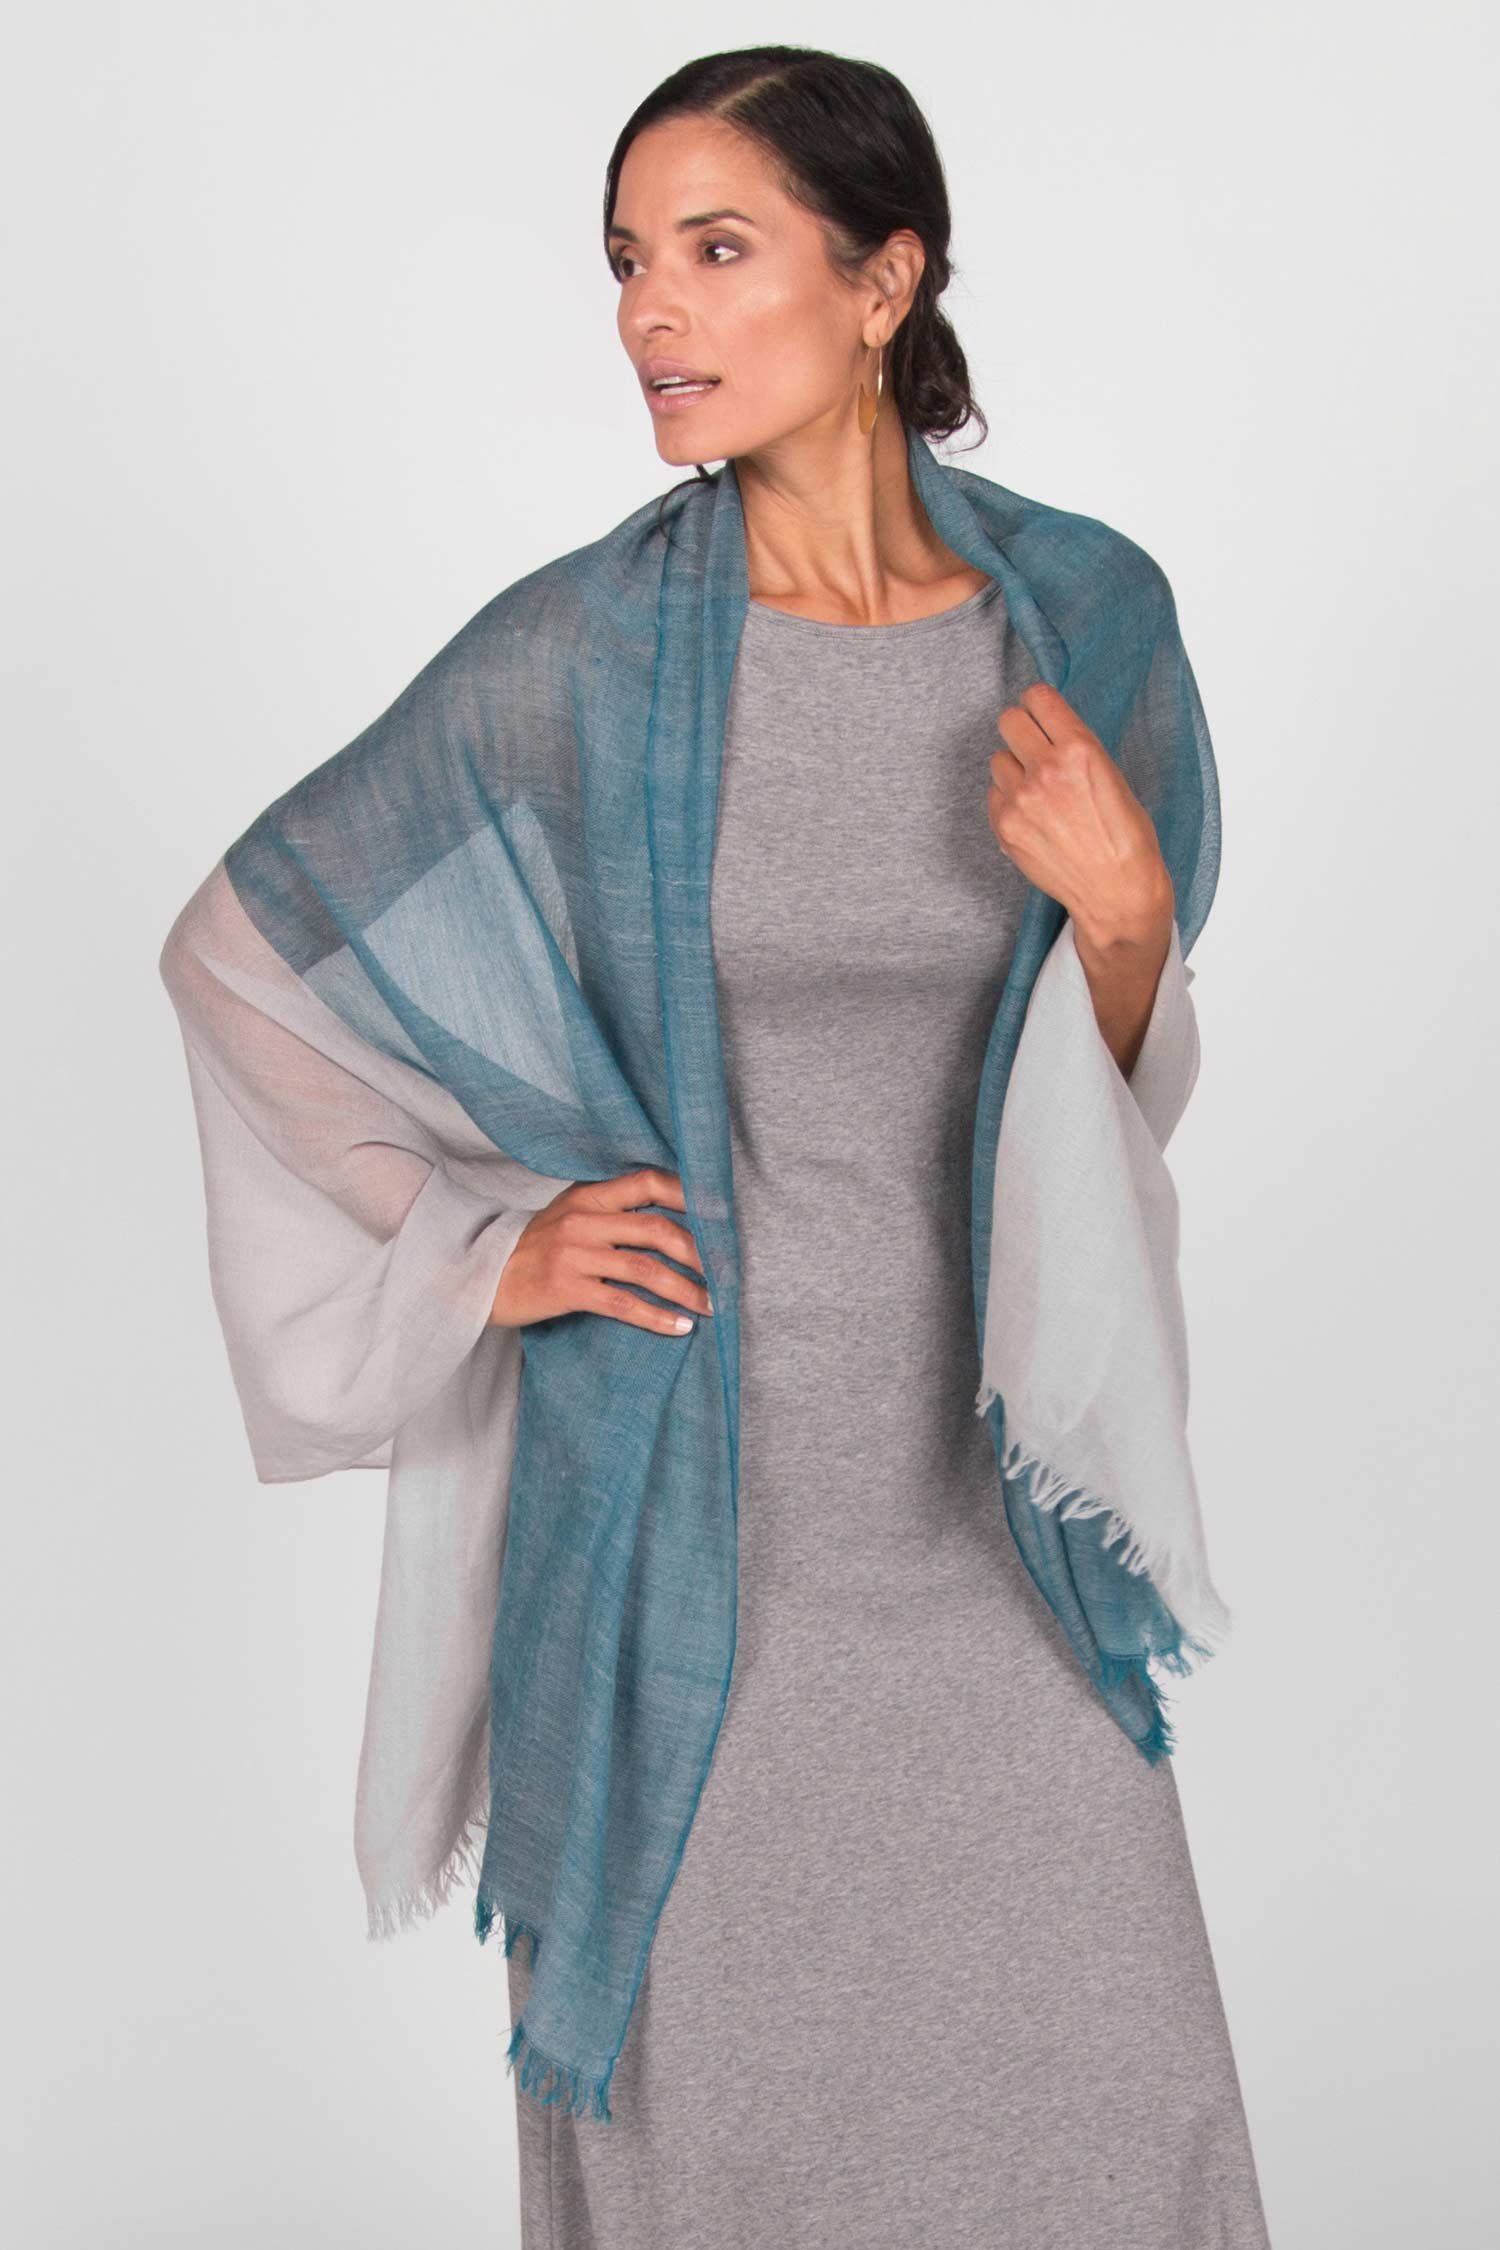 Womens Handloomed Color Block Scarf in Teal and Gray